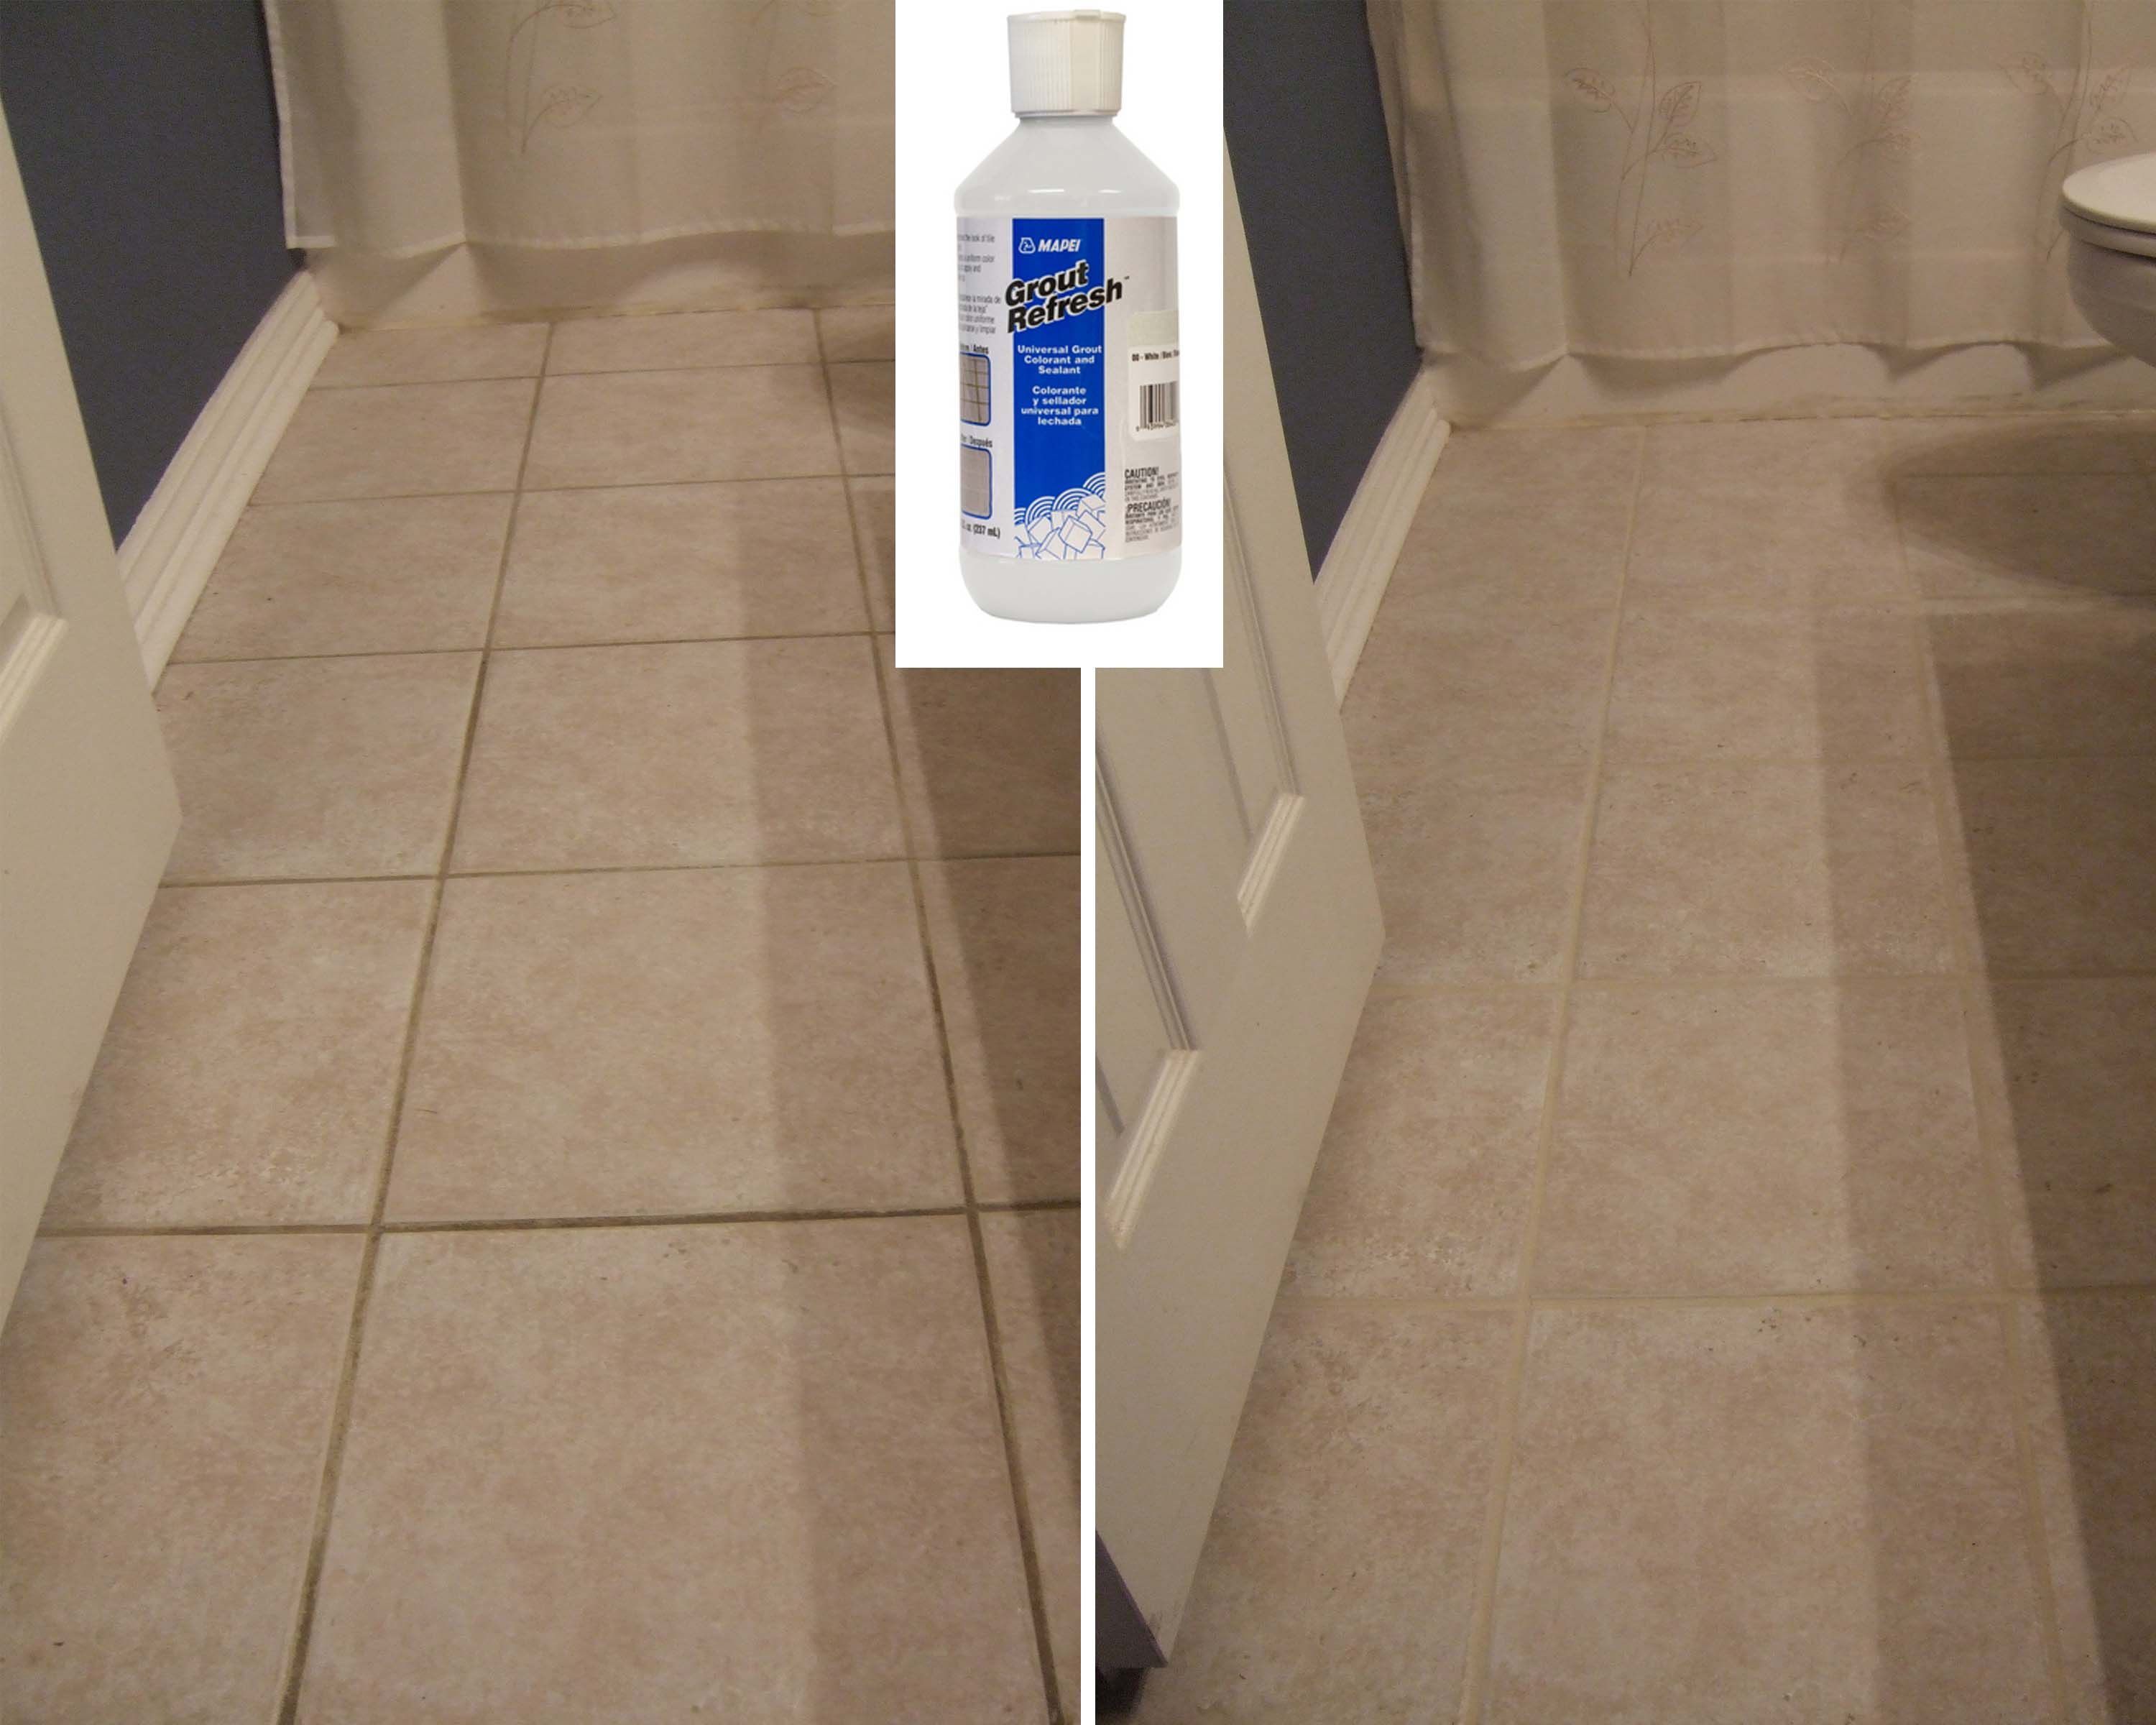 How To Clean Grout With Peroxide Baking Soda Cleaning